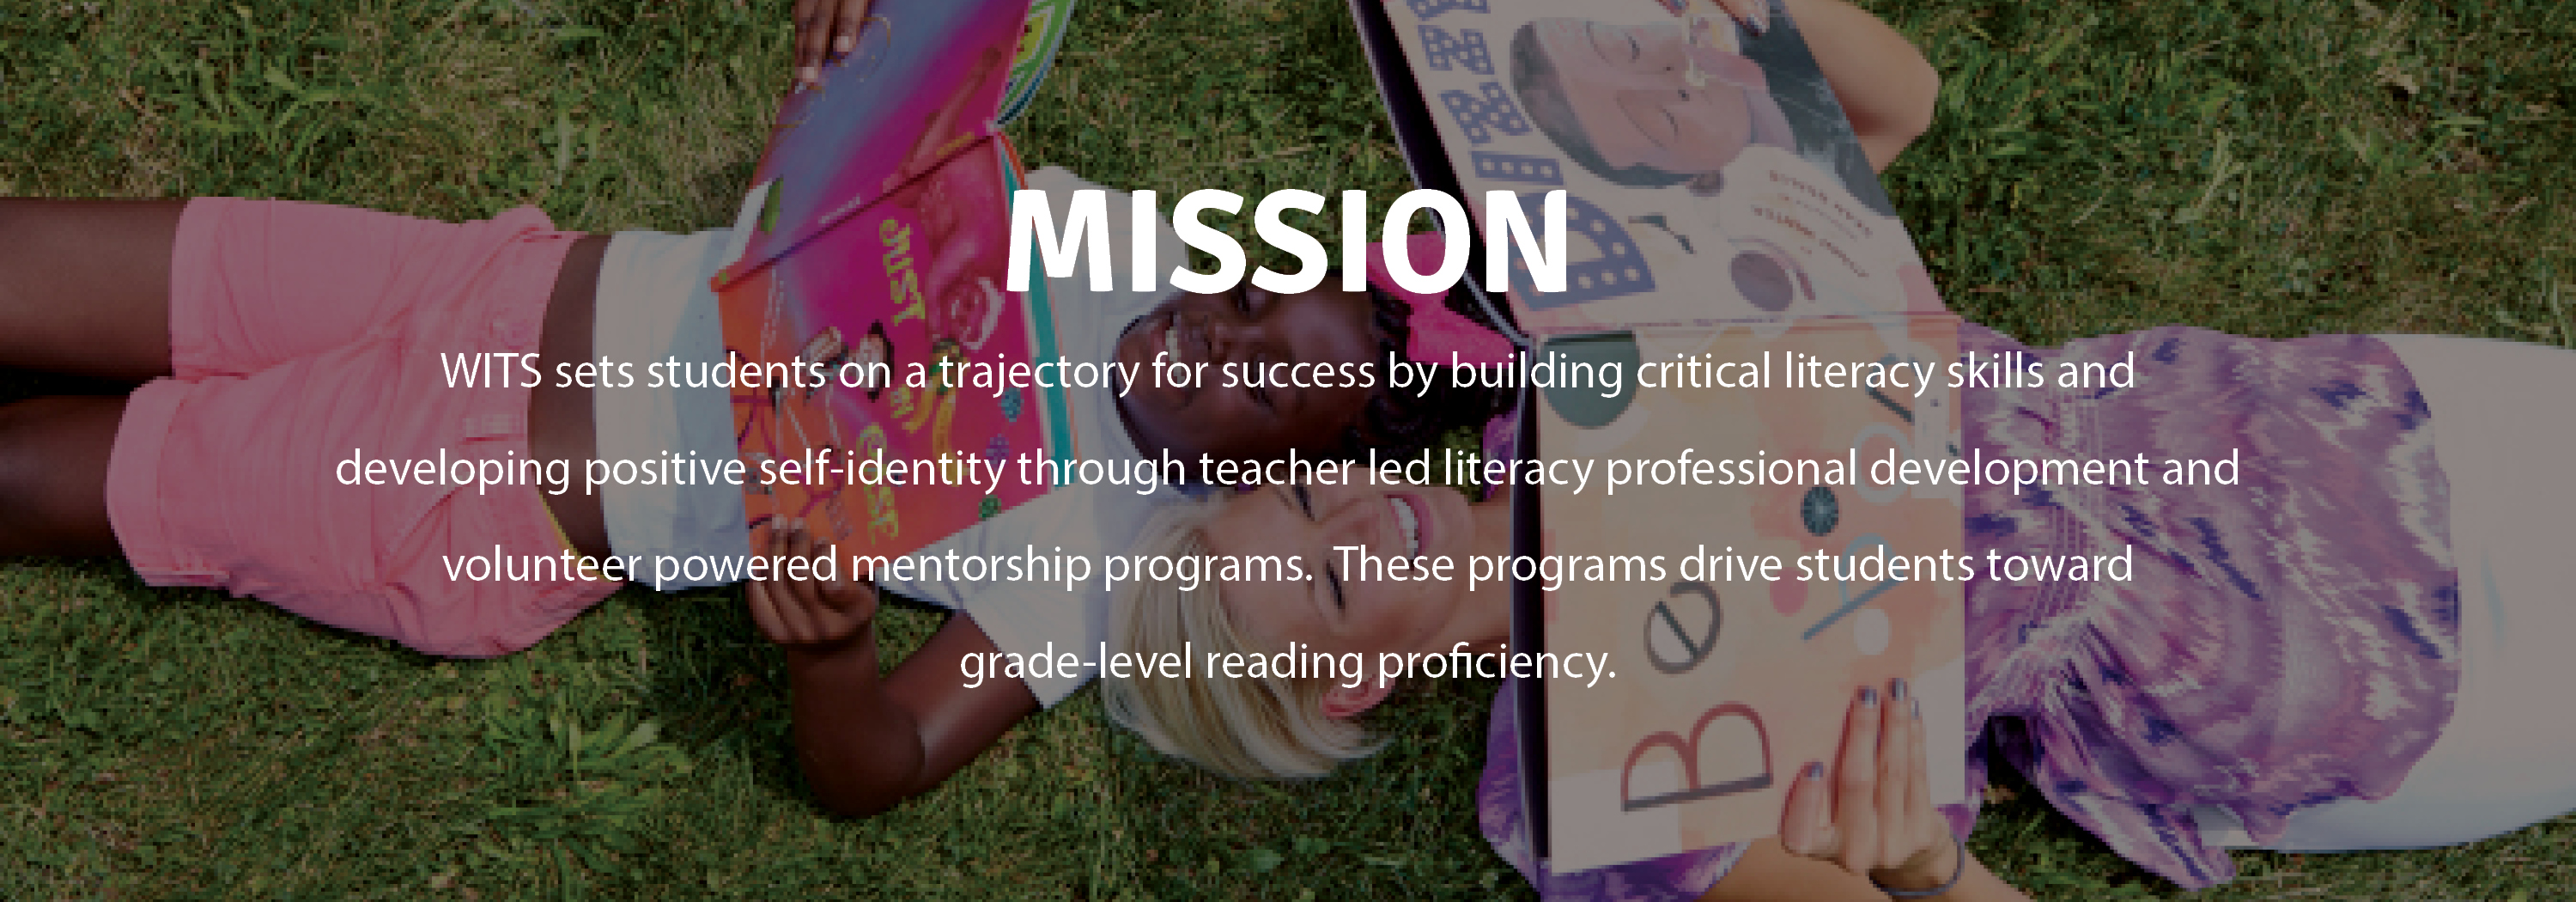 WITS sets students on a trajectory for success by building critical literacy skills and developing positive self-identity through teacher led literacy professional development and volunteer powered mentorship programs.  These programs drive students toward grade-level reading proficiency.